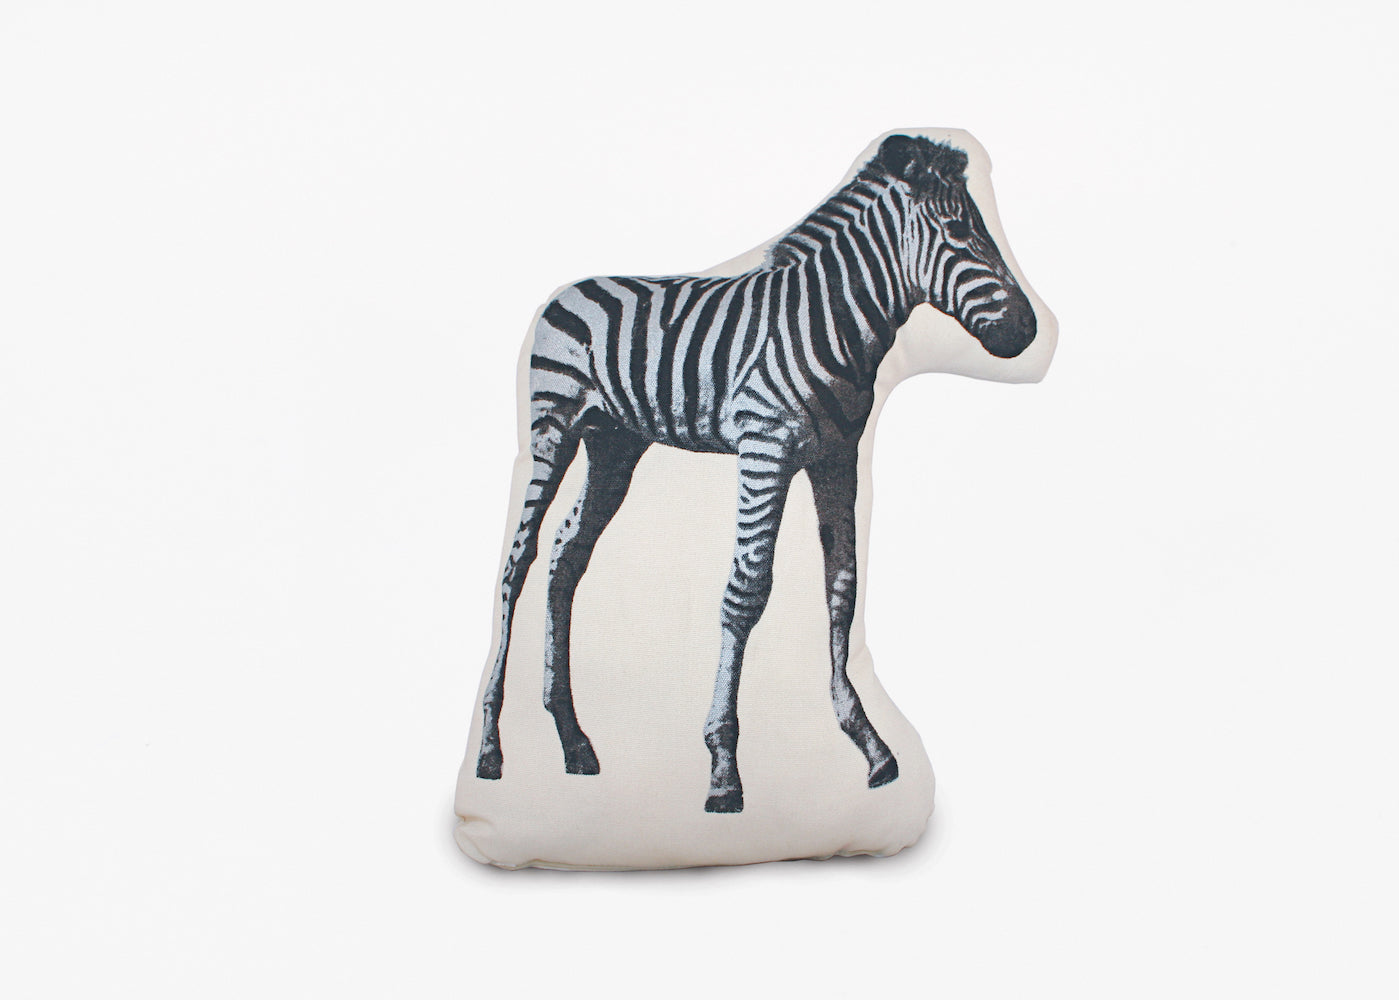 Fauna Cushion - Pico - Zebra